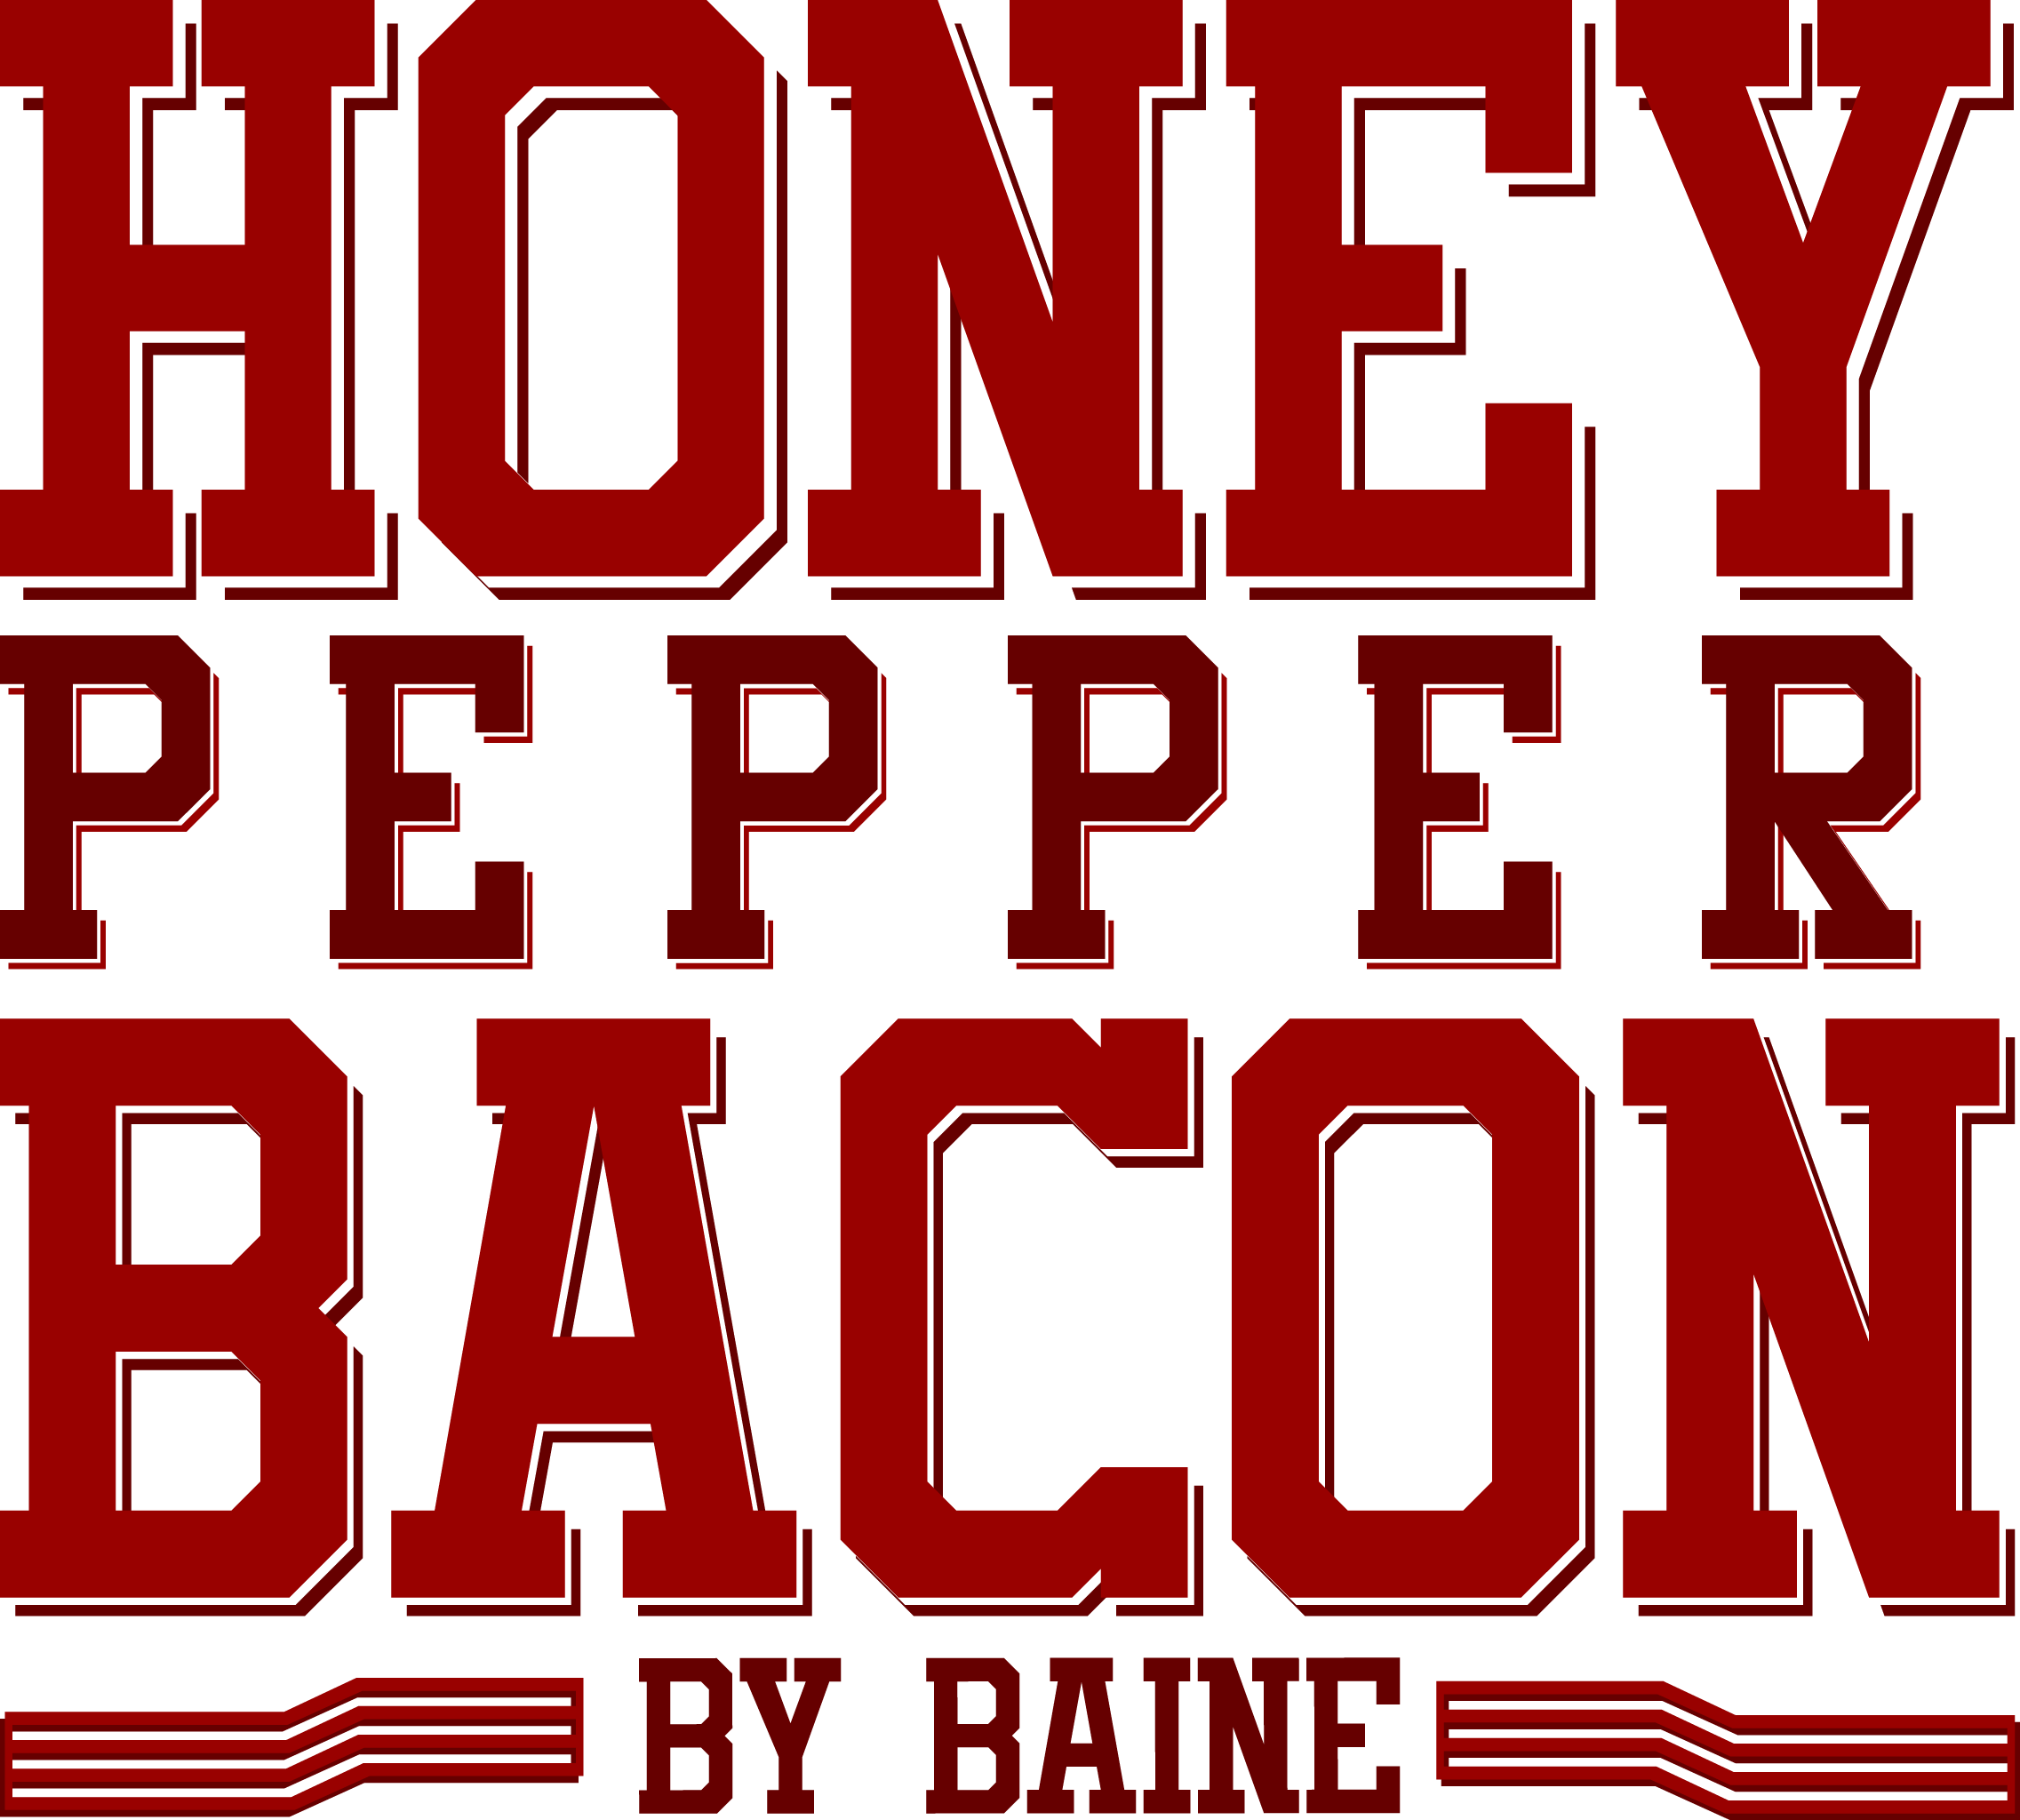 Honey Pepper Bacon